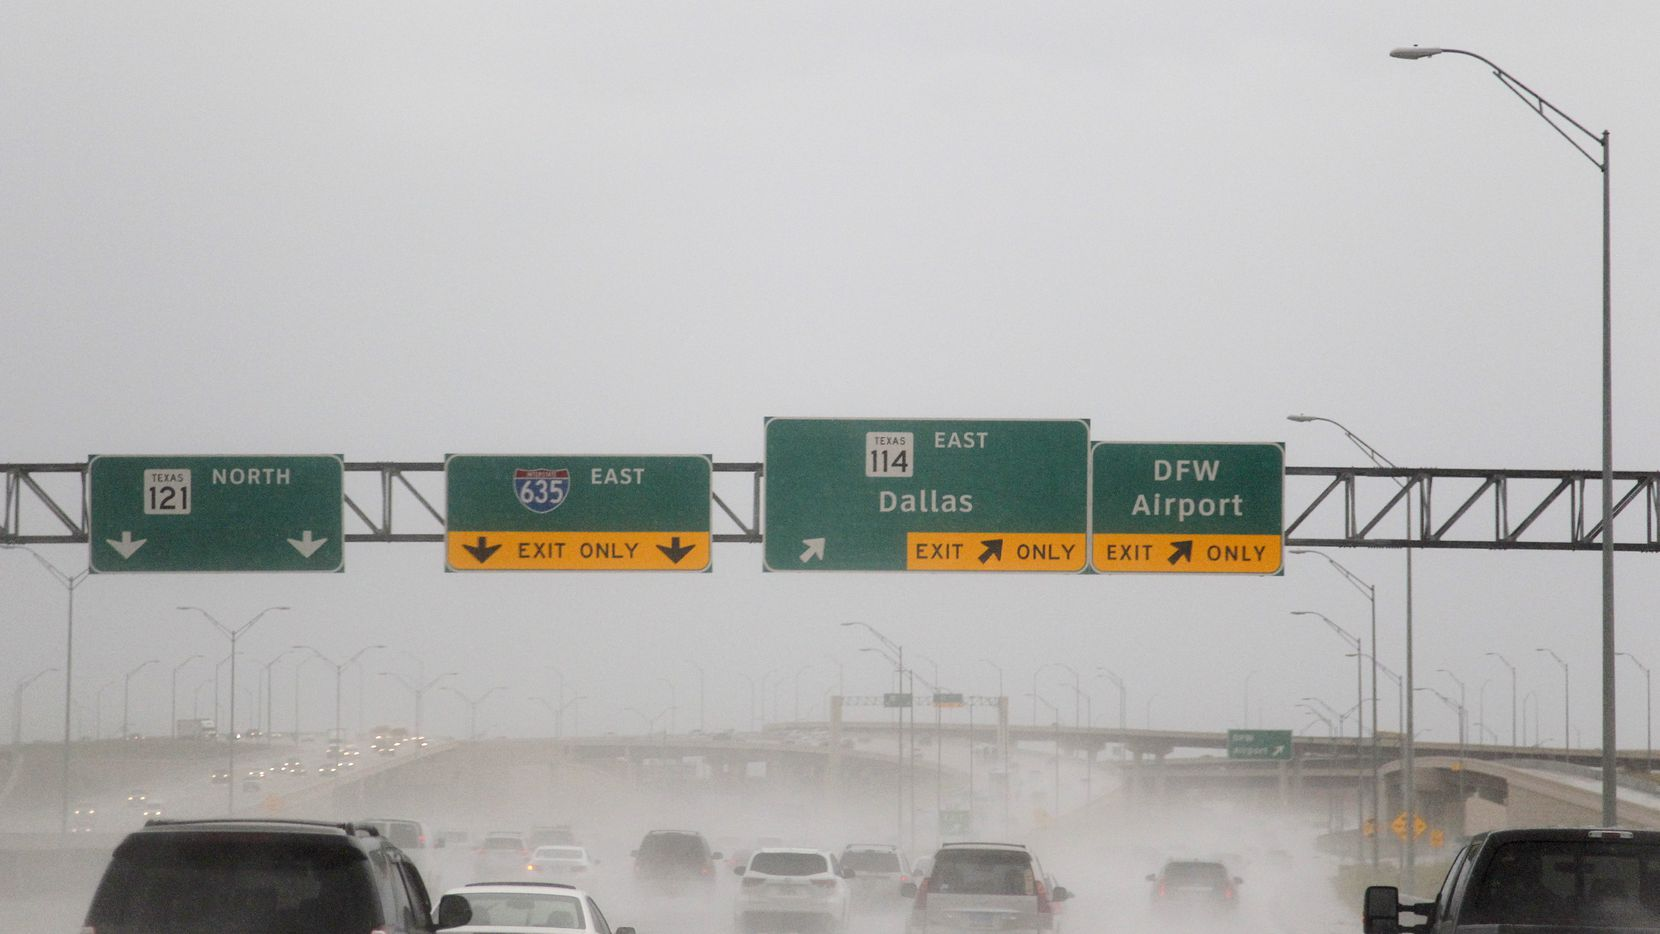 The traffic on Texas State Highway 114 east bound before DFW Airport in Grapevine, TX during the rain on June 9, 2014.  (Kye R. Lee / The Dallas Morning News)